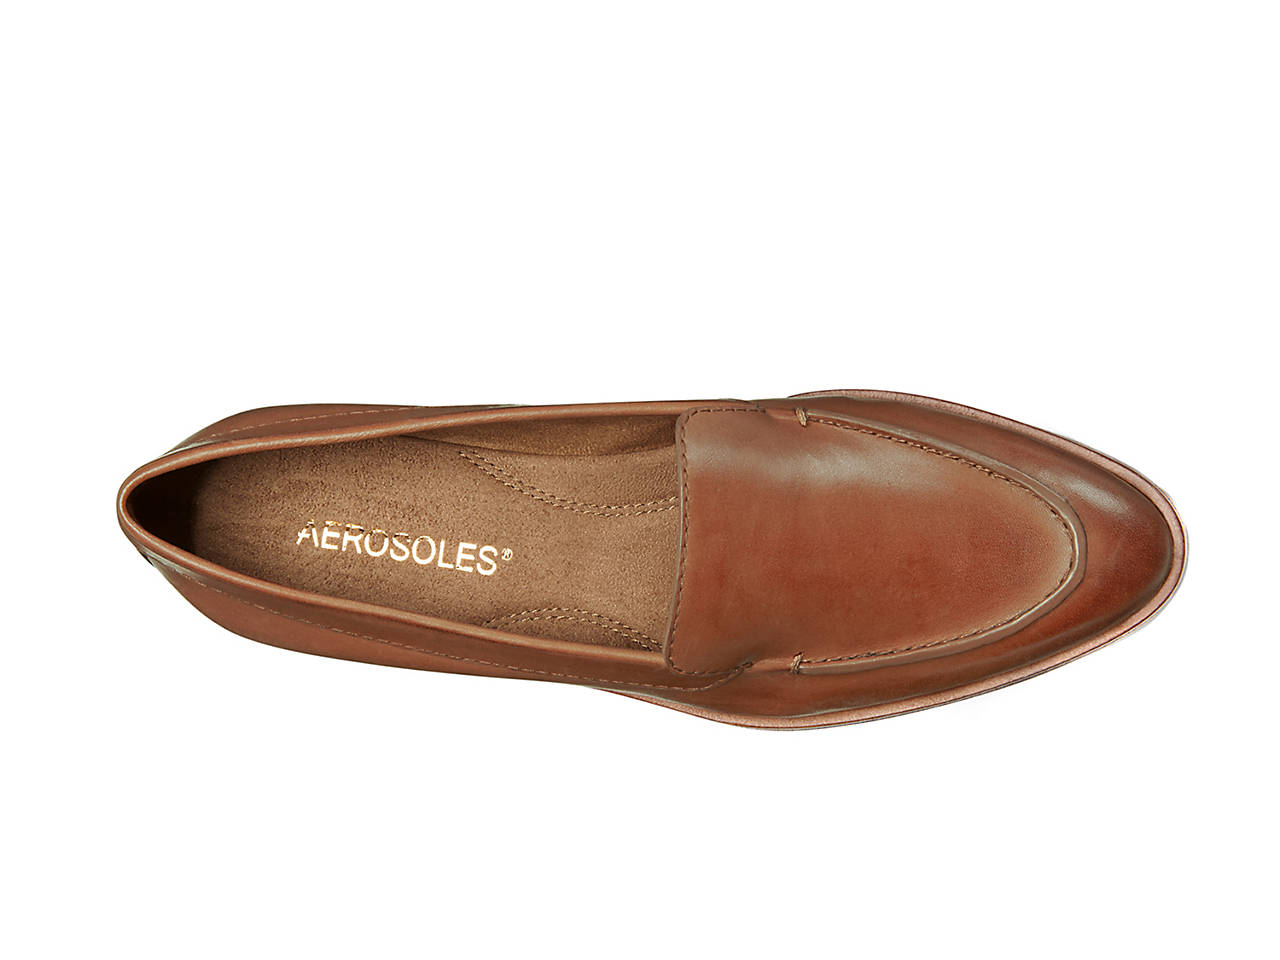 8c59a456efd Aerosoles East Side Loafer Women s Shoes